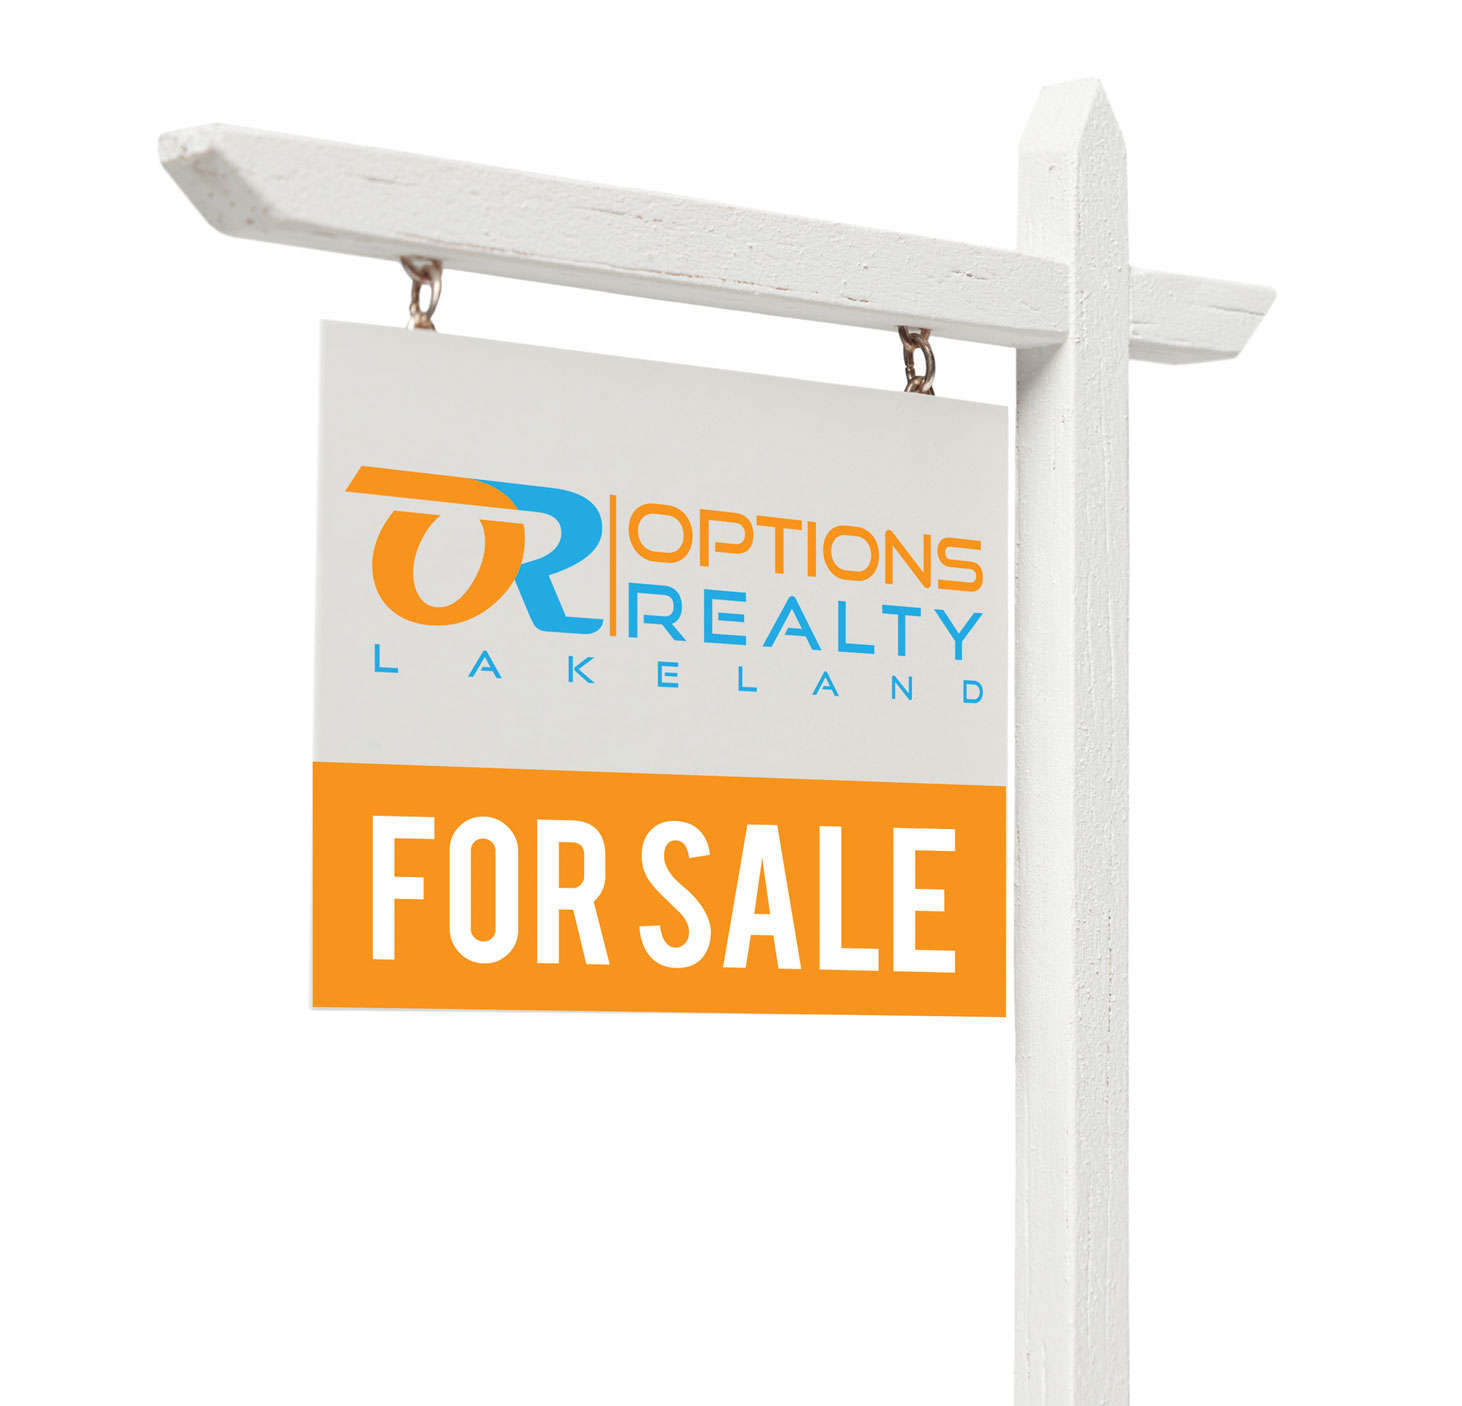 http://optionsrealtylakeland.ca/wp-content/uploads/2017/09/for-sale-sign.jpg